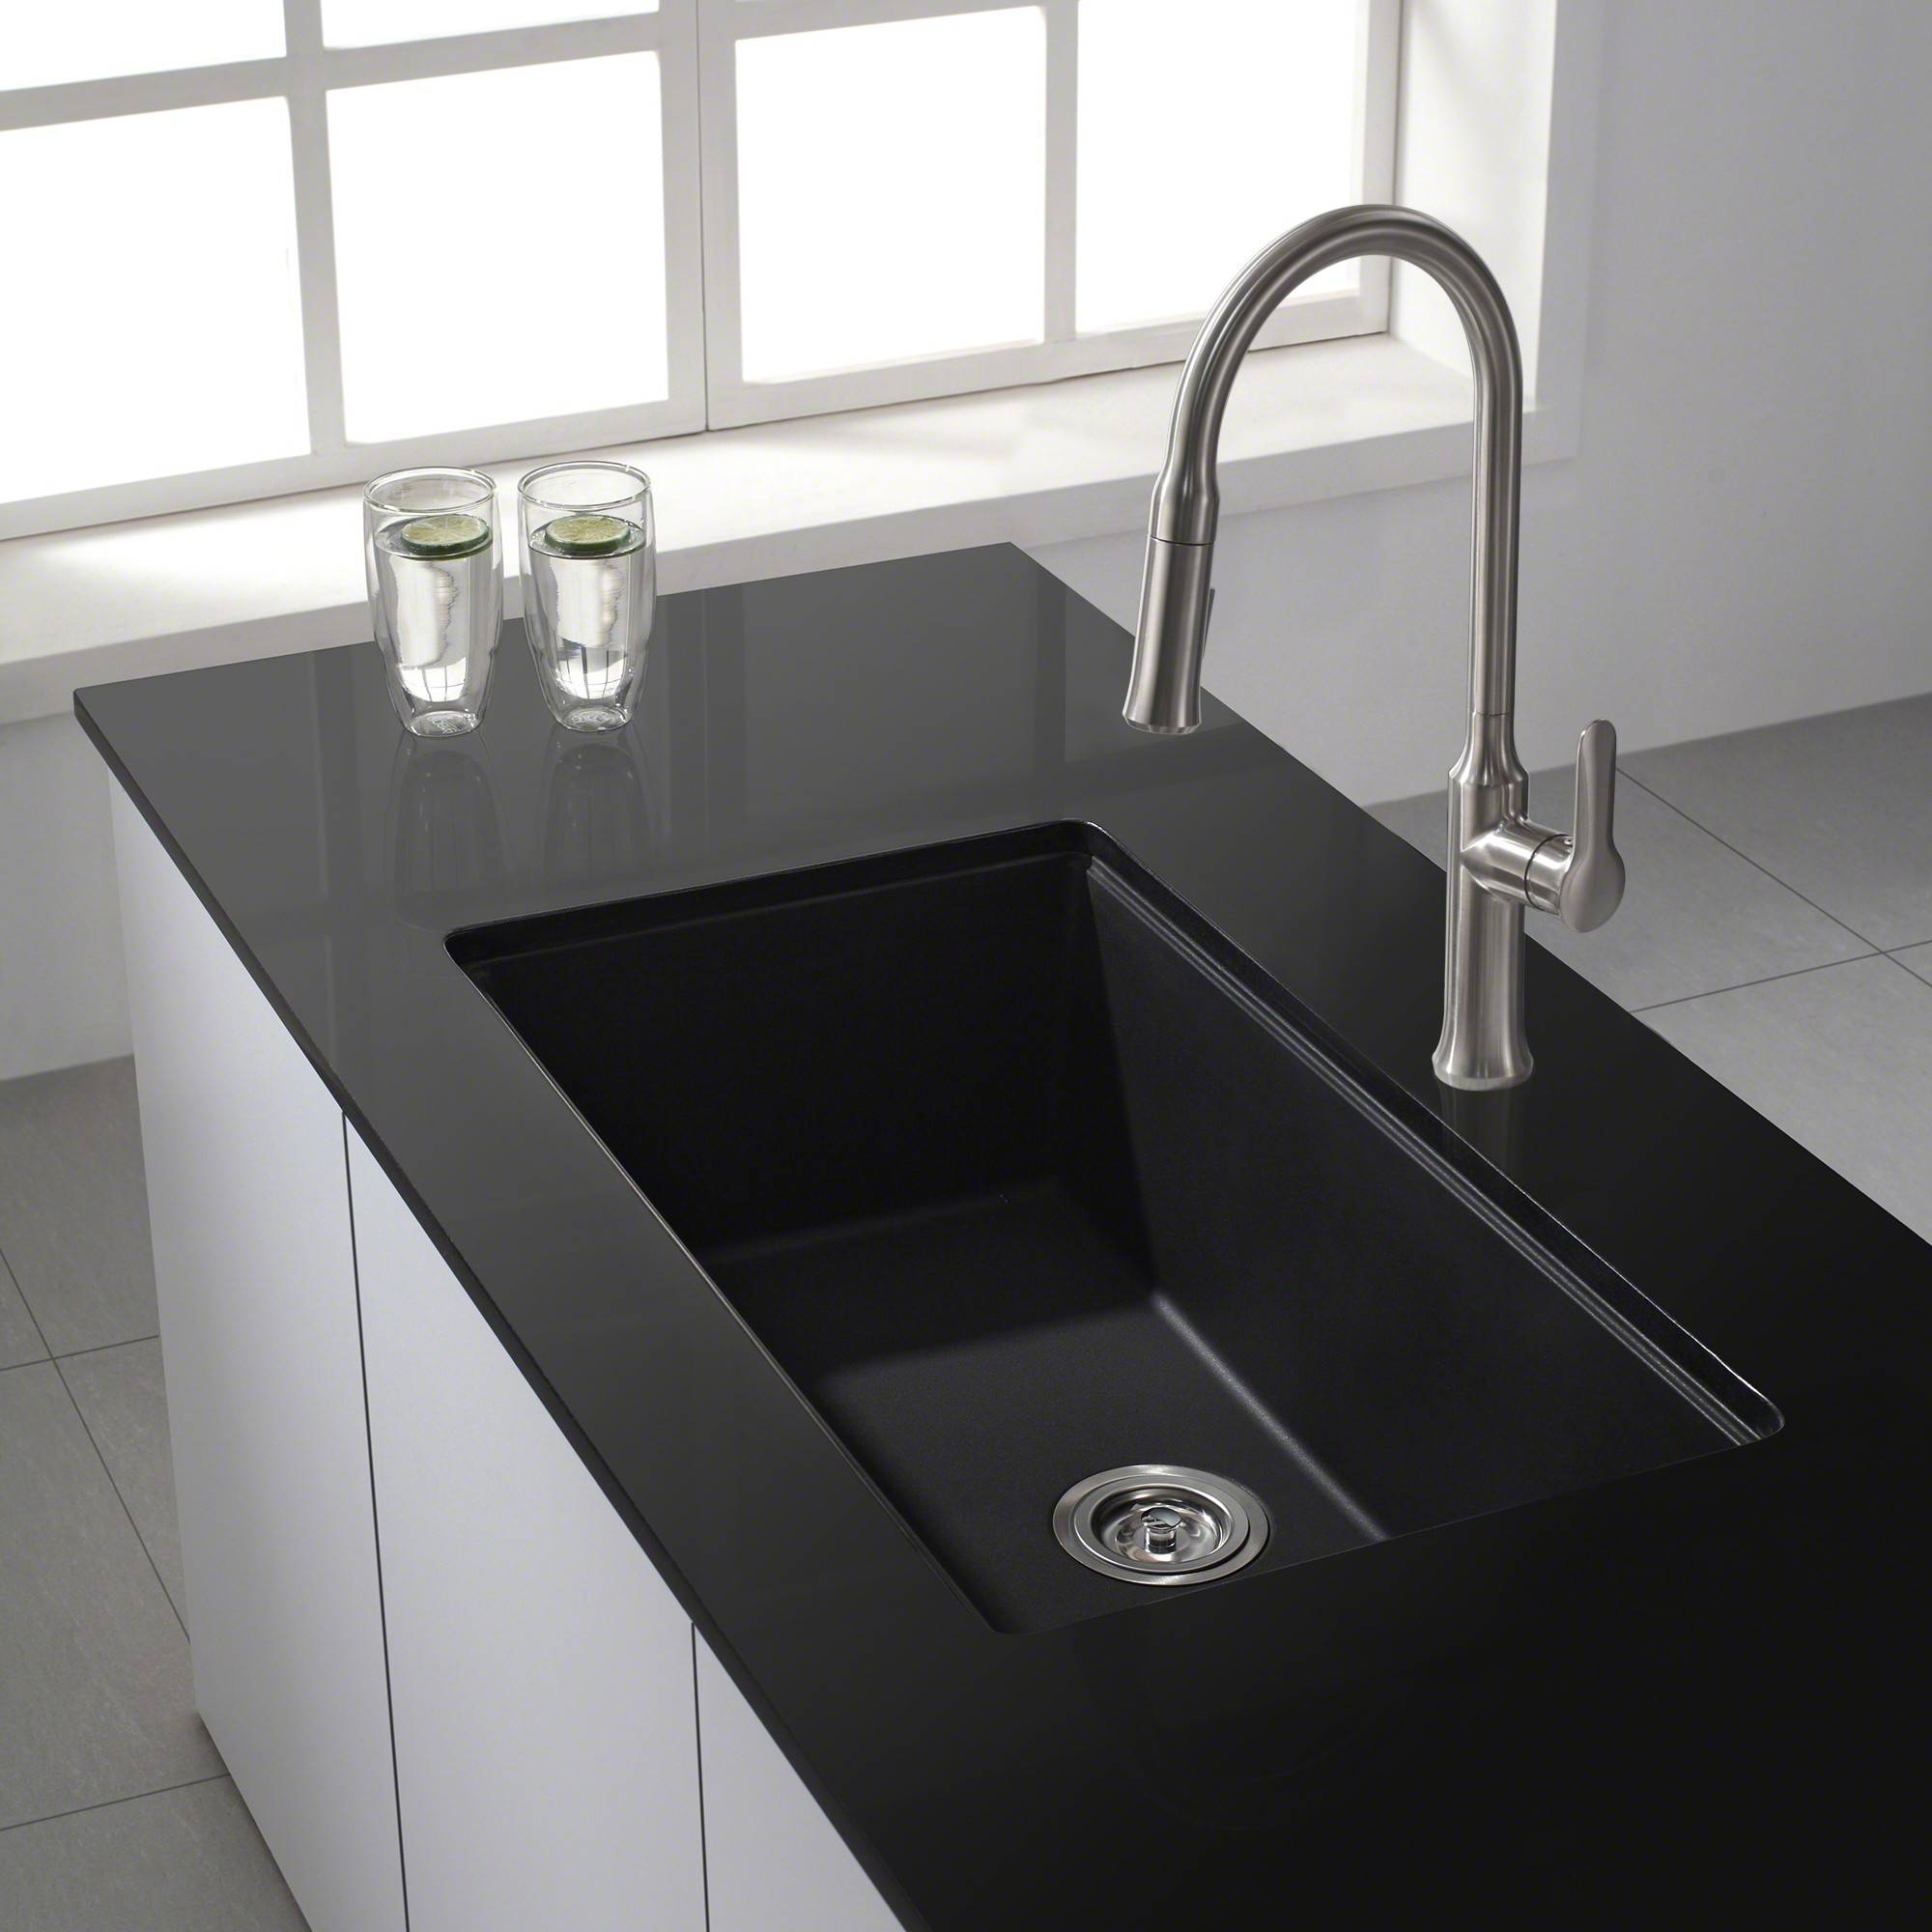 Ideas, kitchen sinks kitchen sink faucet running slow single hole wall pertaining to sizing 2000 x 2000  .